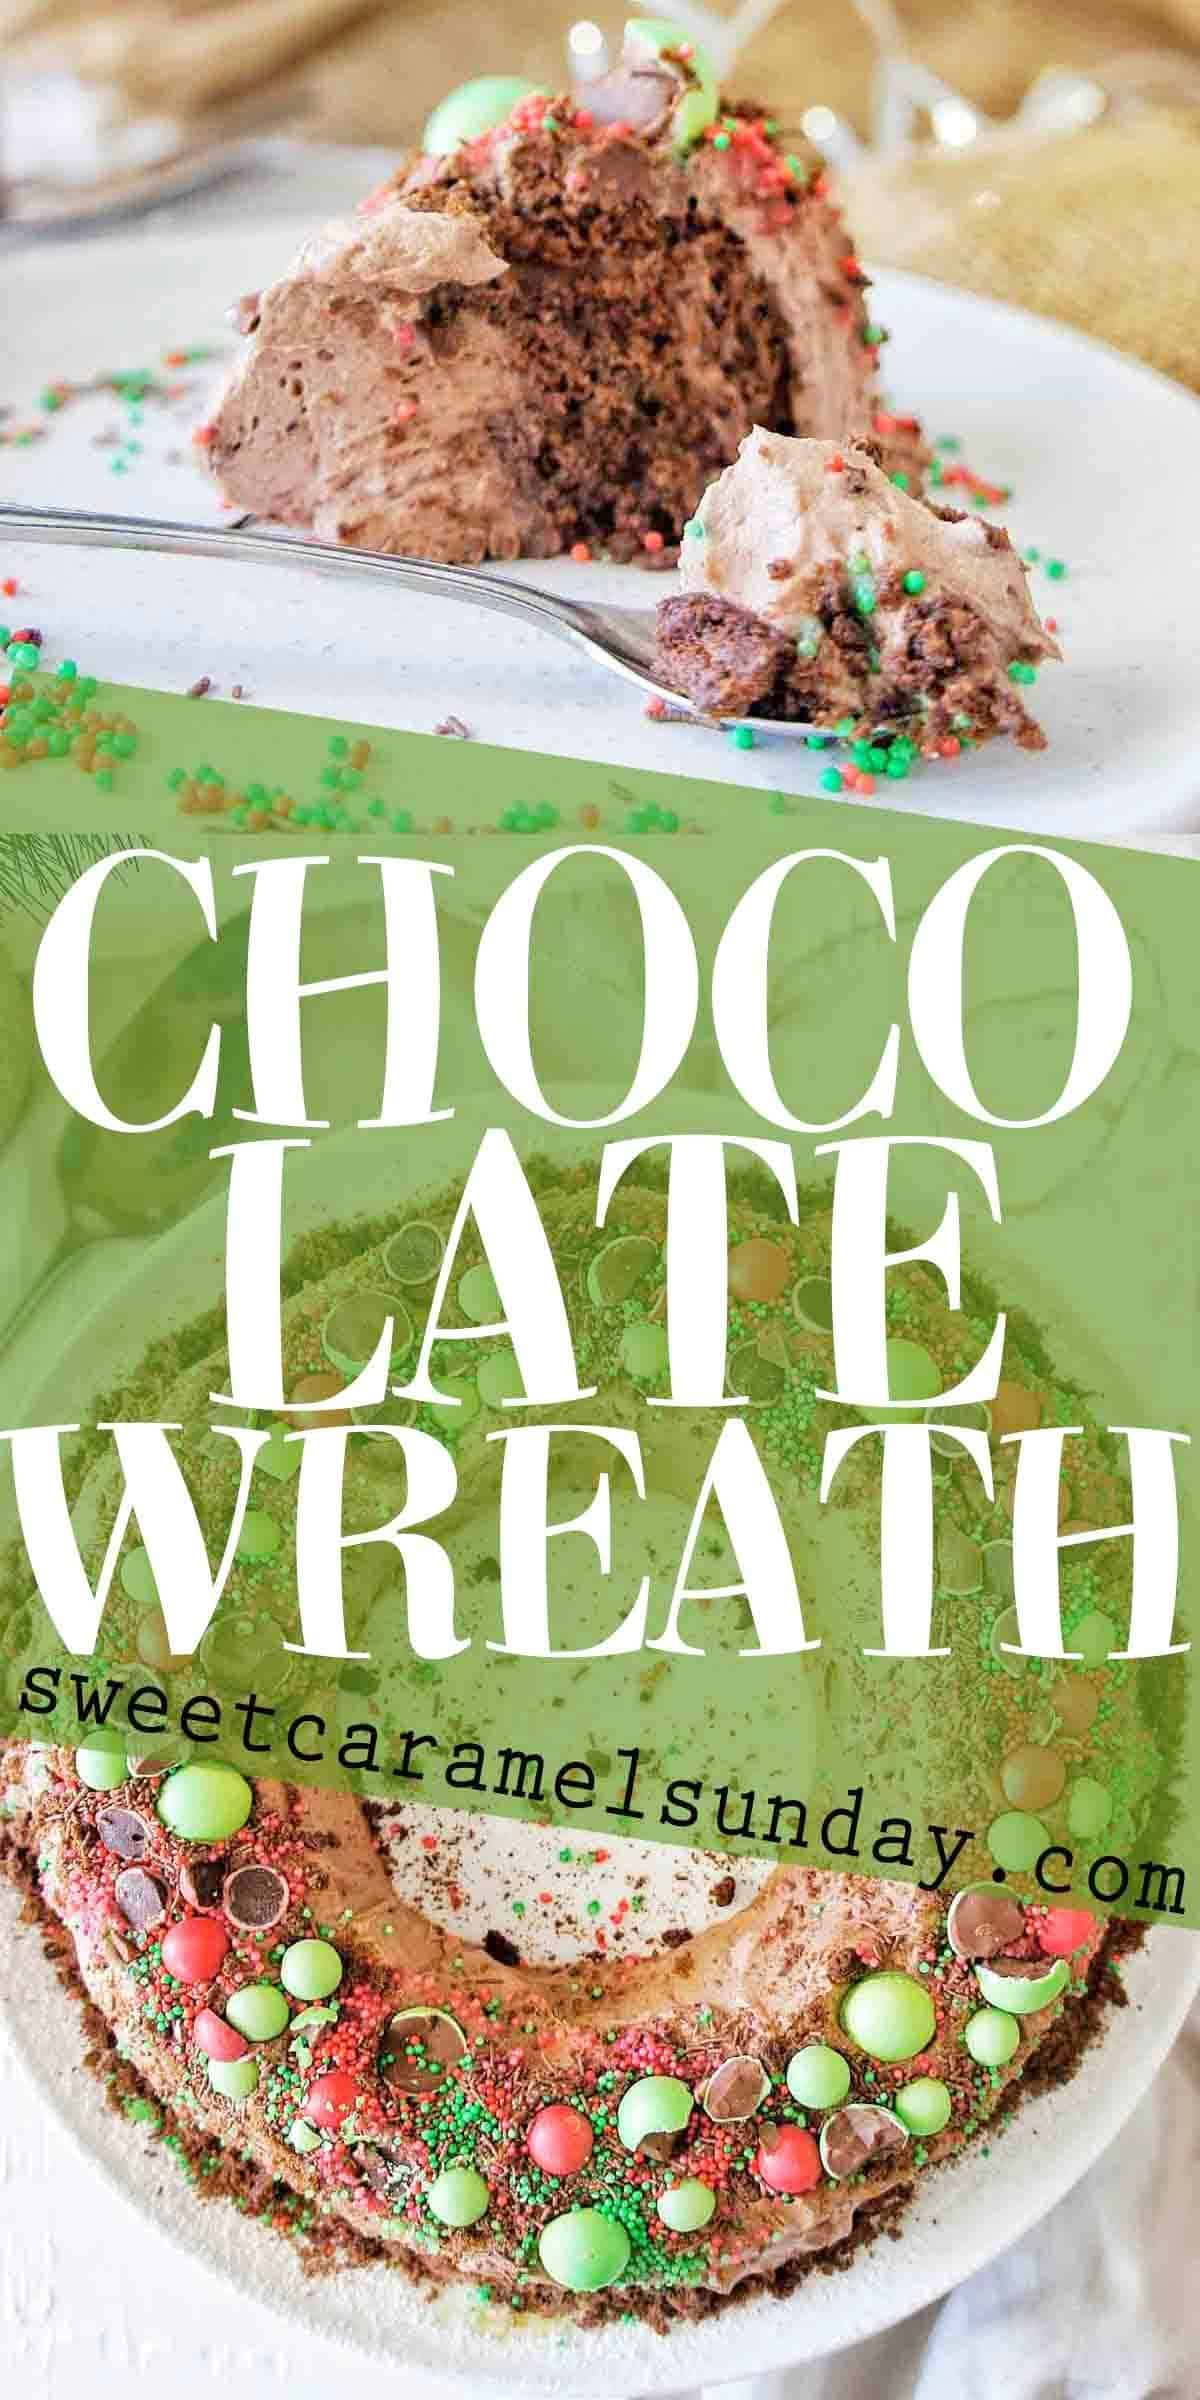 Chocolate Wreath with text overlay